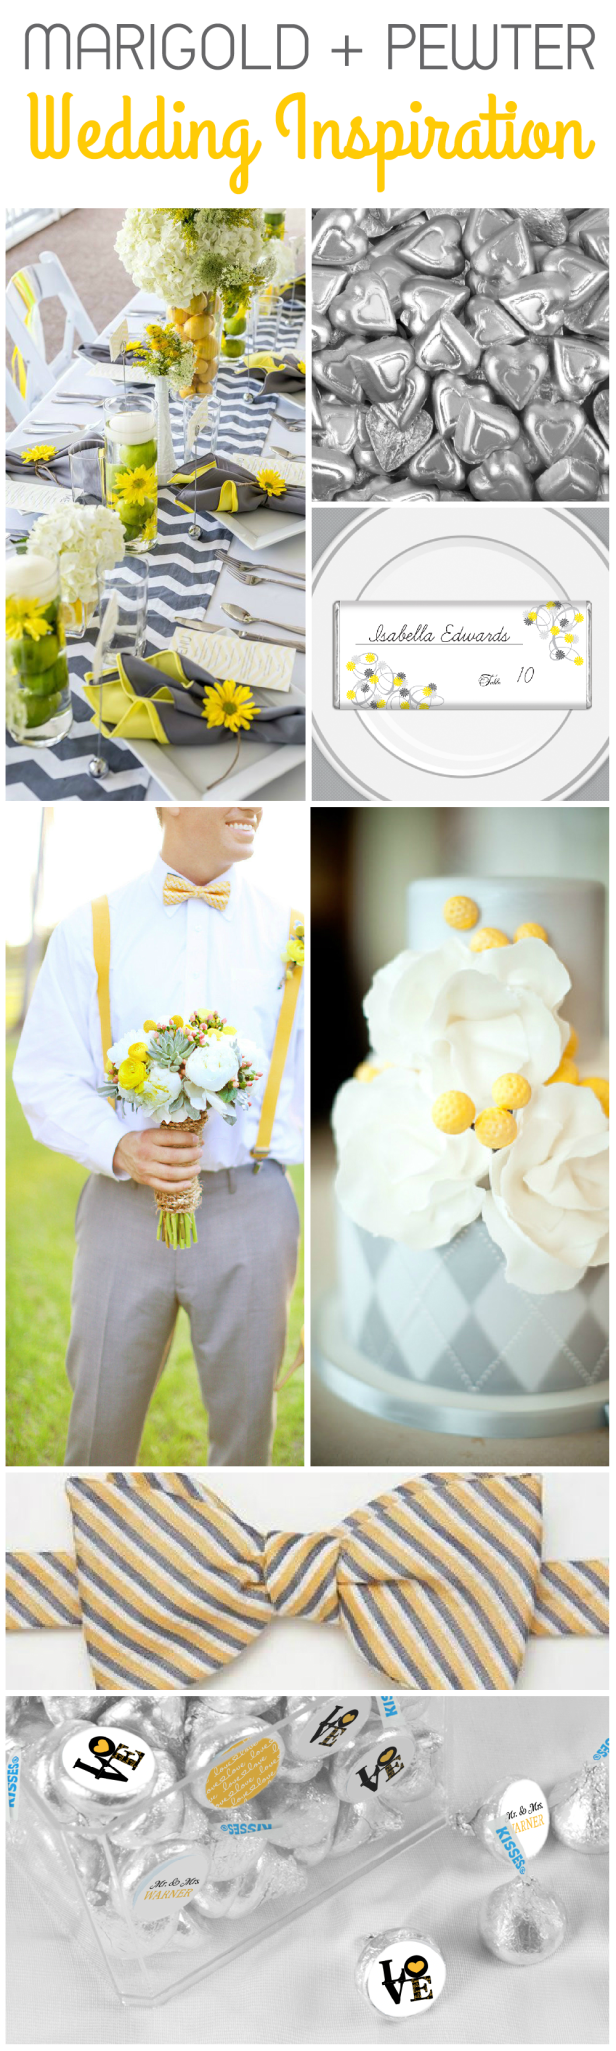 Marigold and Pewter Wedding Theme